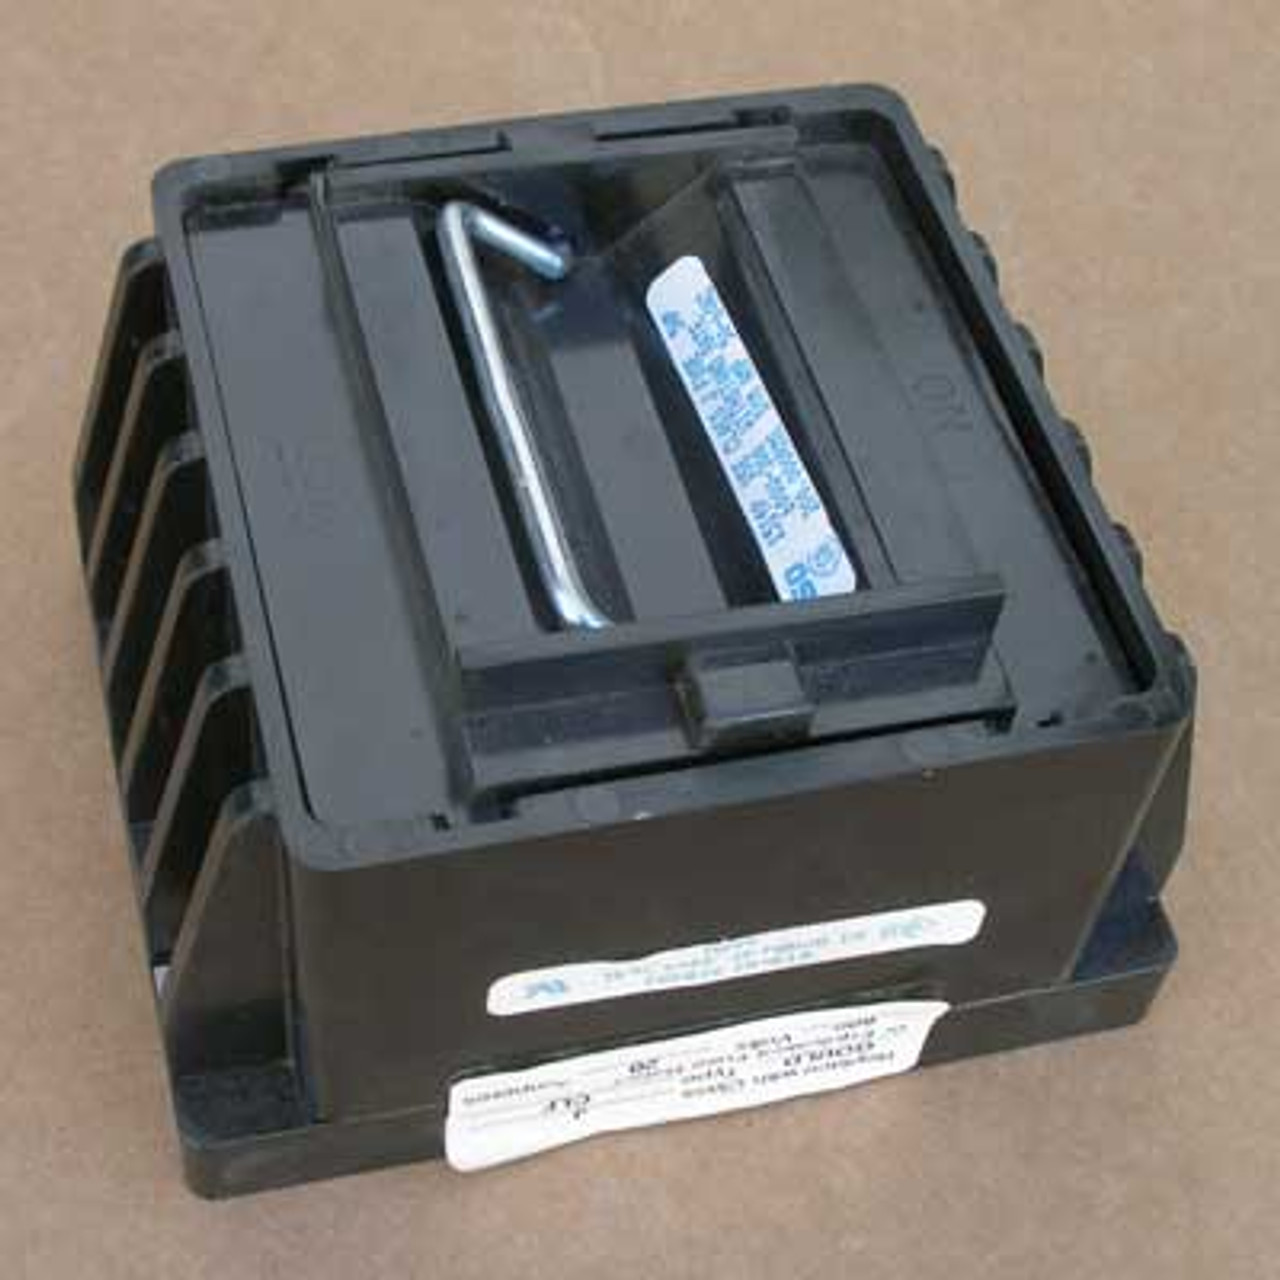 USD 15149 Dead Front Fused Switch 30 Amp 2 Pole 600V - Used